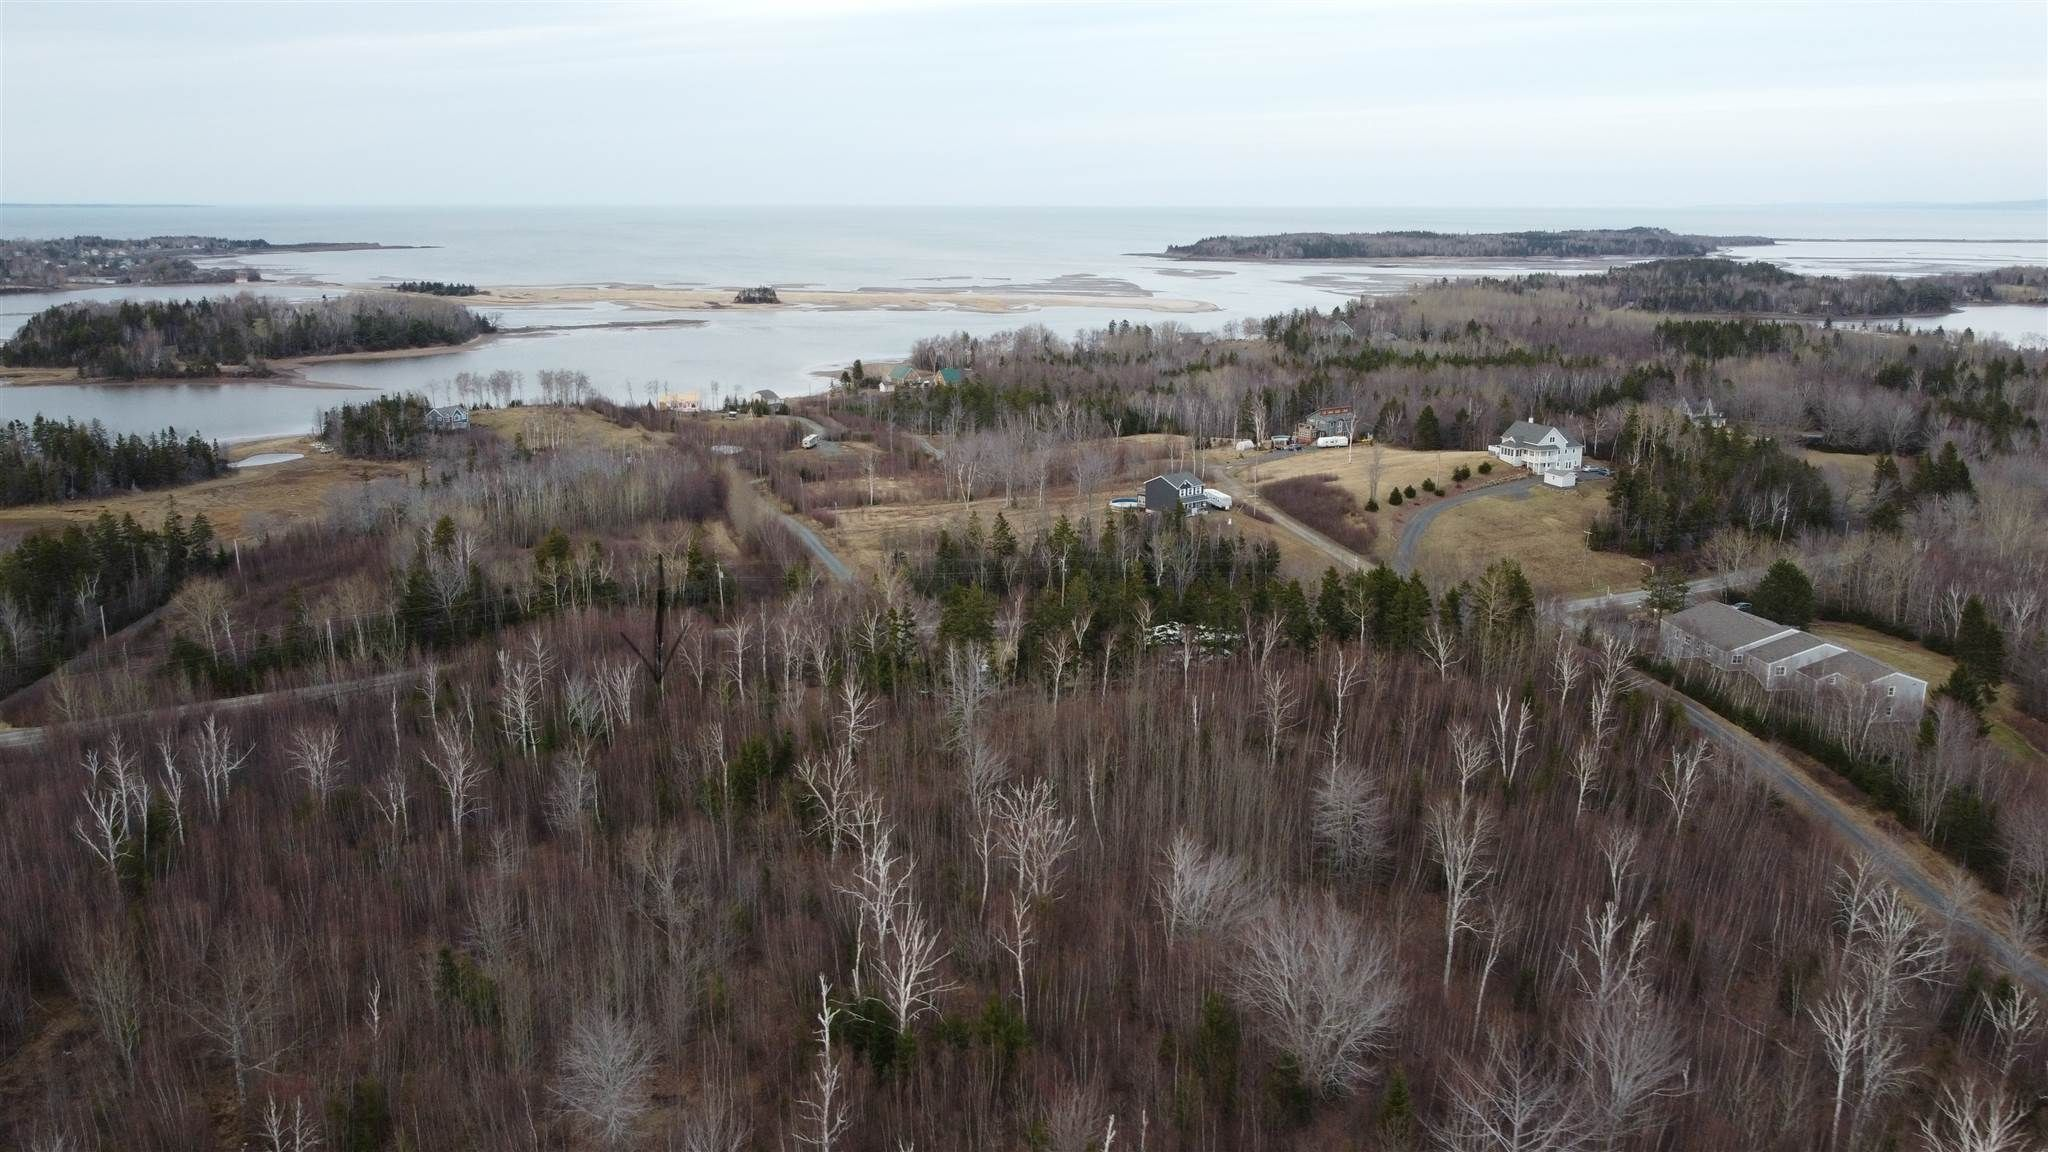 Main Photo: Lot 12 Pictou Landing Road in Little Harbour: 108-Rural Pictou County Vacant Land for sale (Northern Region)  : MLS®# 202106888